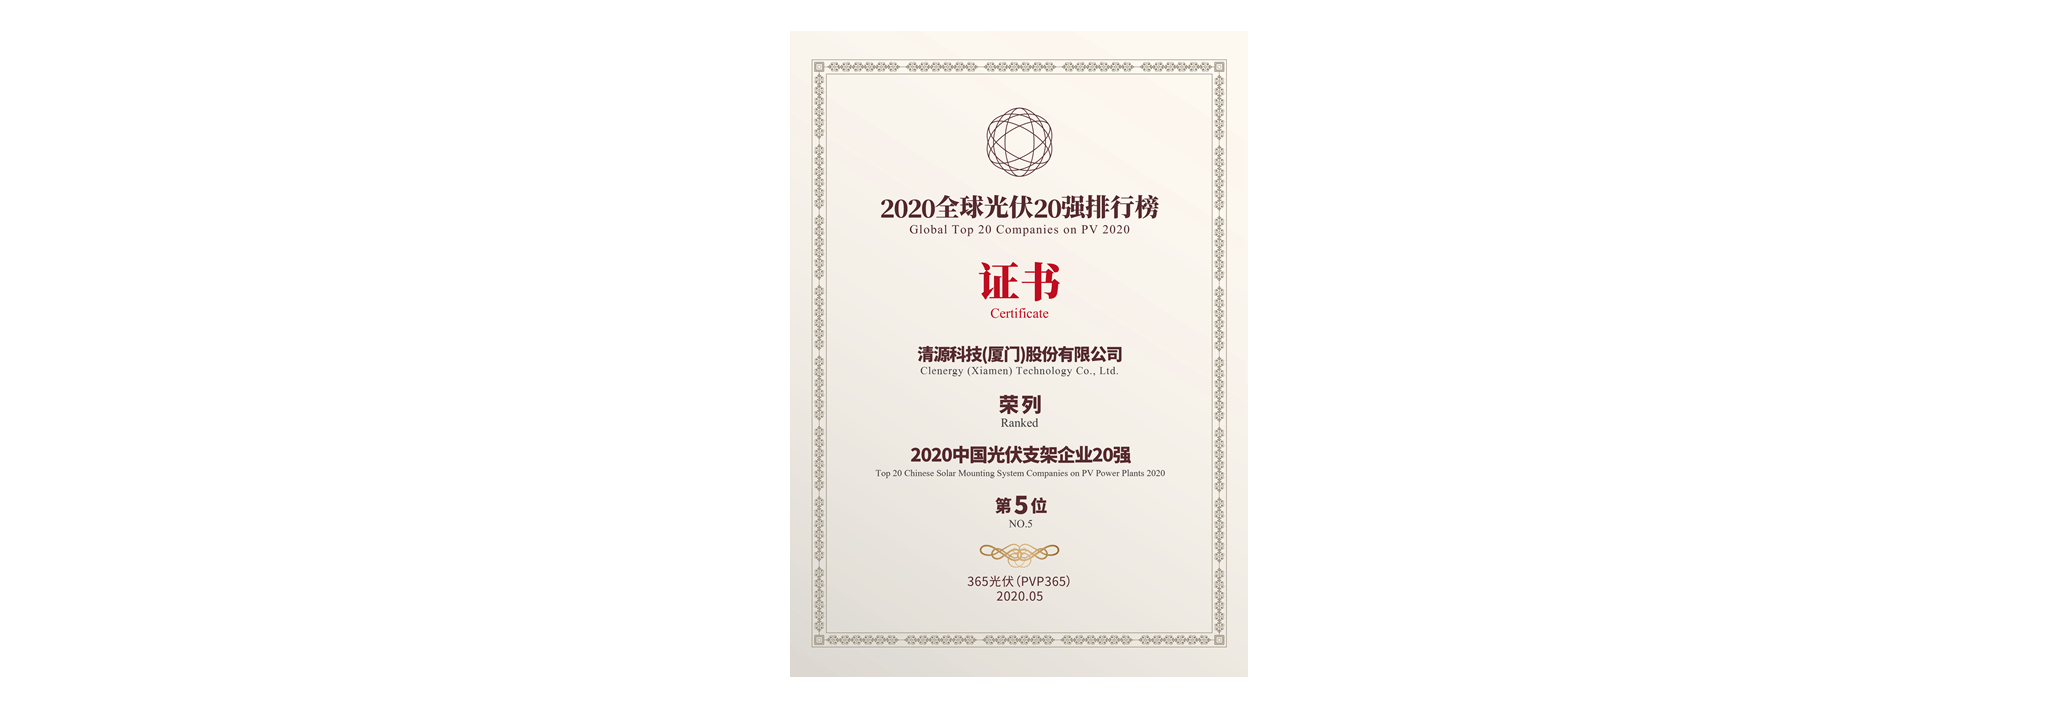 Clenergy Ranked 5th in Top Chinese Solar Mounting System Companies 2020 Certificate